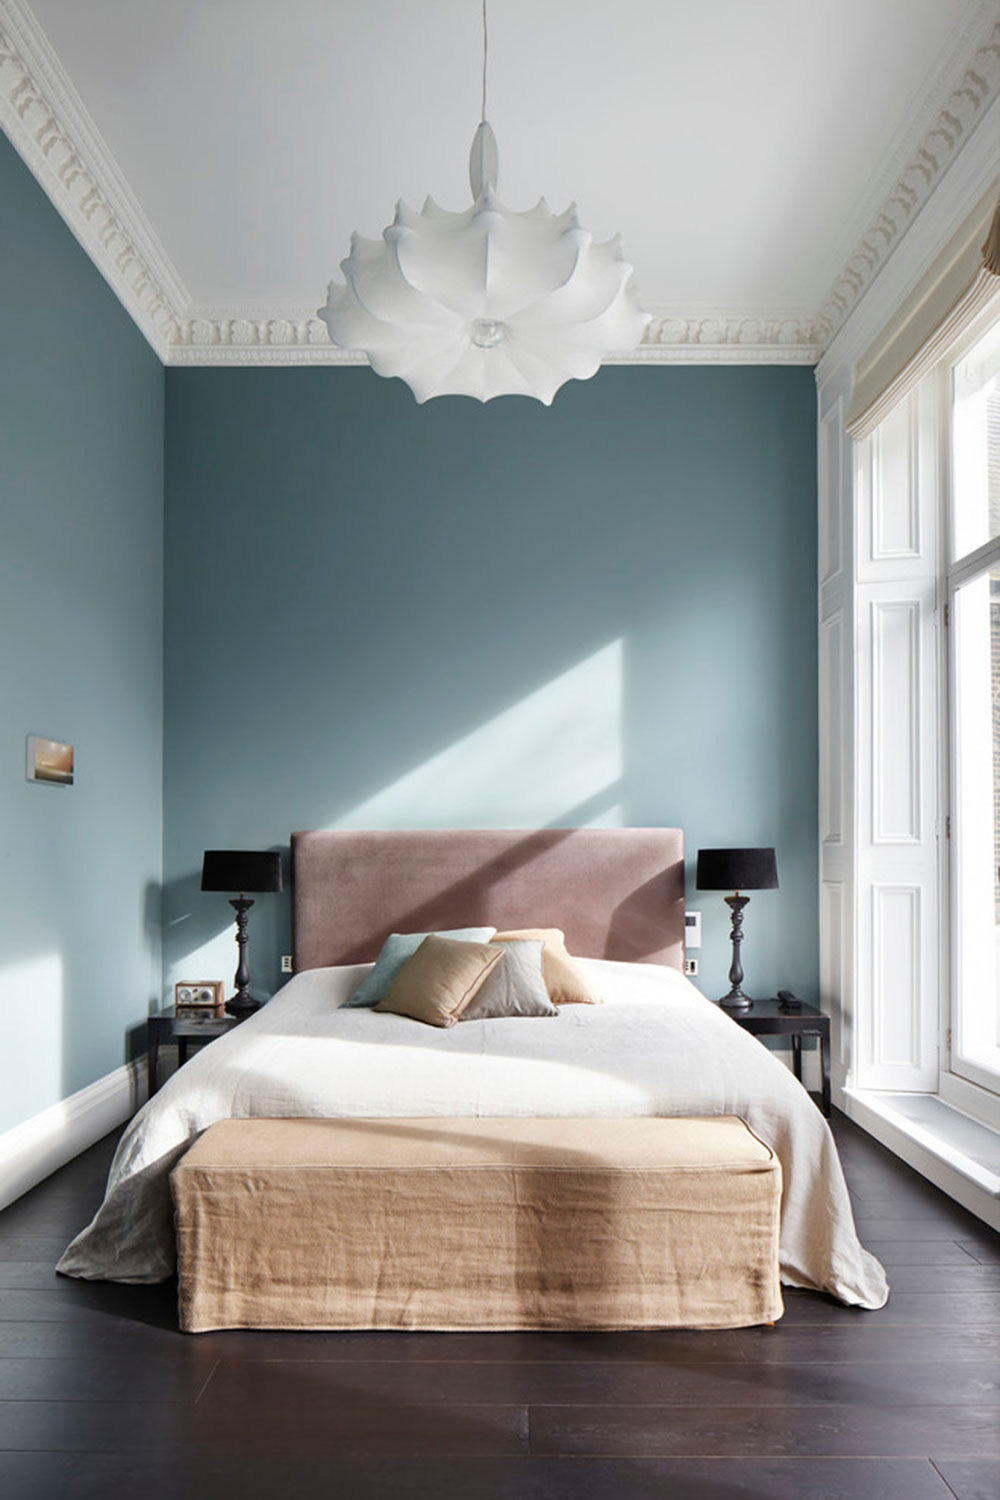 Bedroom Ideas  How To Make Your Bedroom Feel Cozy bedroom ideas Bedroom  Ideas  How. Bedroom Ideas  How To Make Your Bedroom Feel Cozy